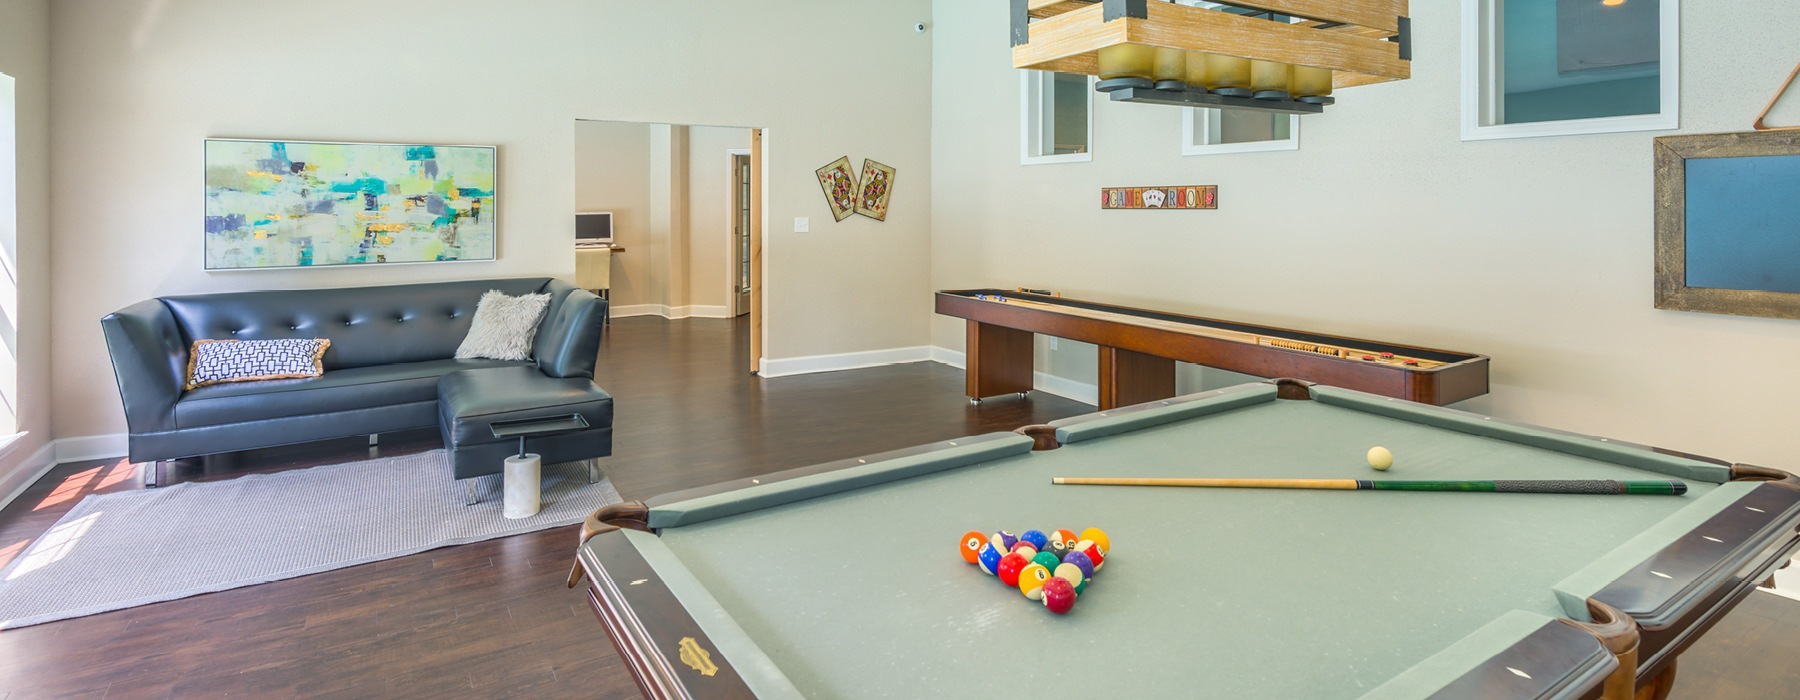 spacious, game room with large windows and overhead lighting